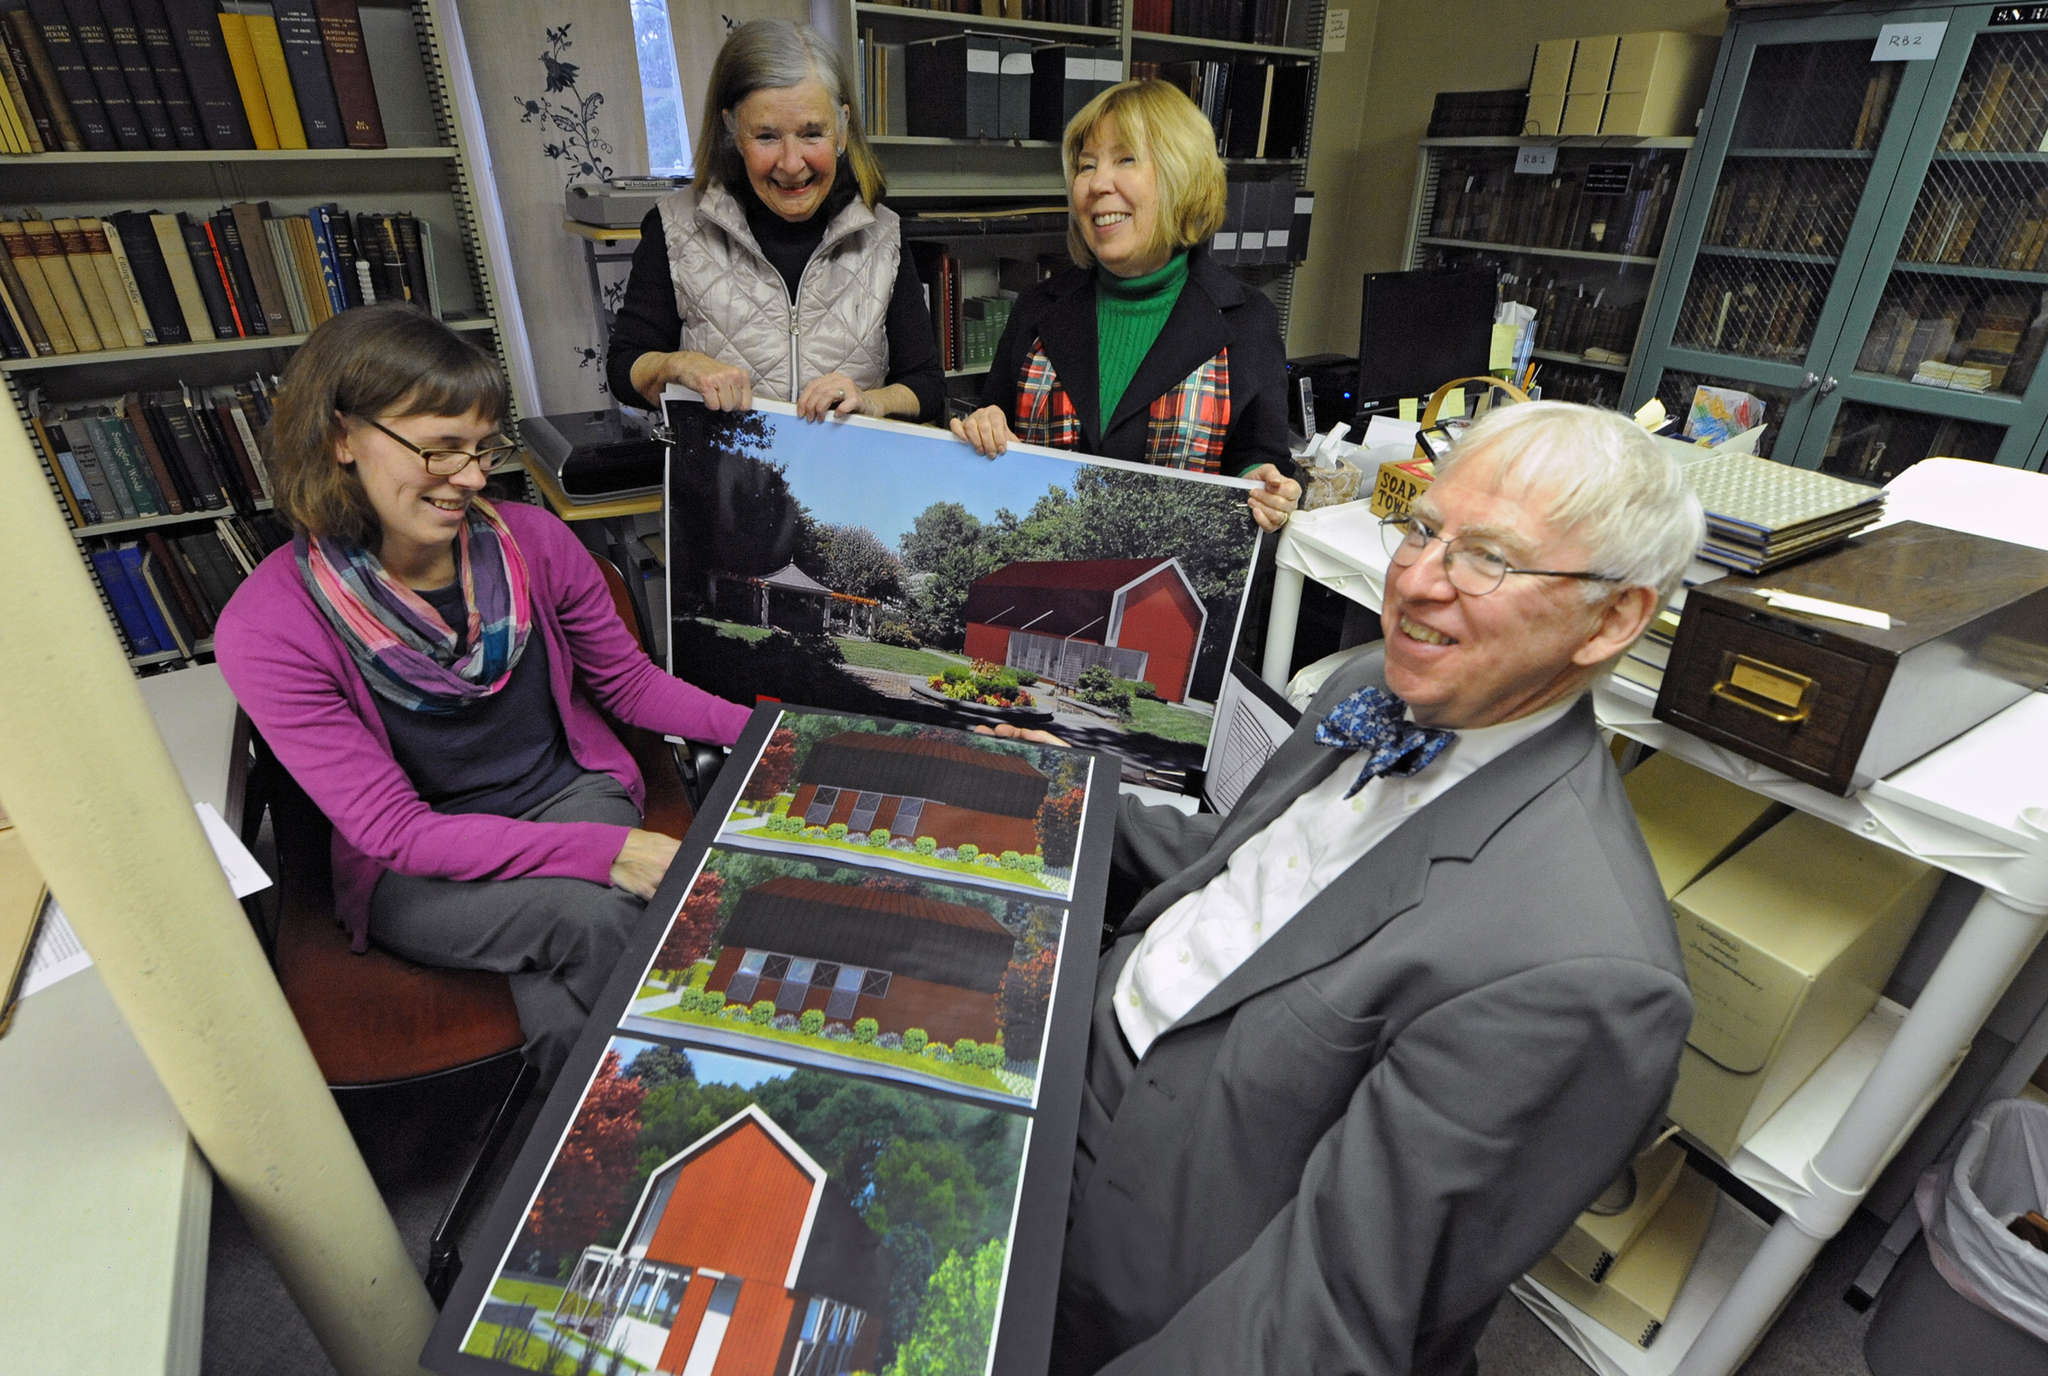 Showing off the architectural renderings of the proposed Archive Center for the Historical Society of Haddonfield are (from left) librarian and archivist Dana Dorman, former librarian Kathy Tassini, president Carol Smith, and retired Haddonfield librarian and library committee chair Doug Rauschenberger.